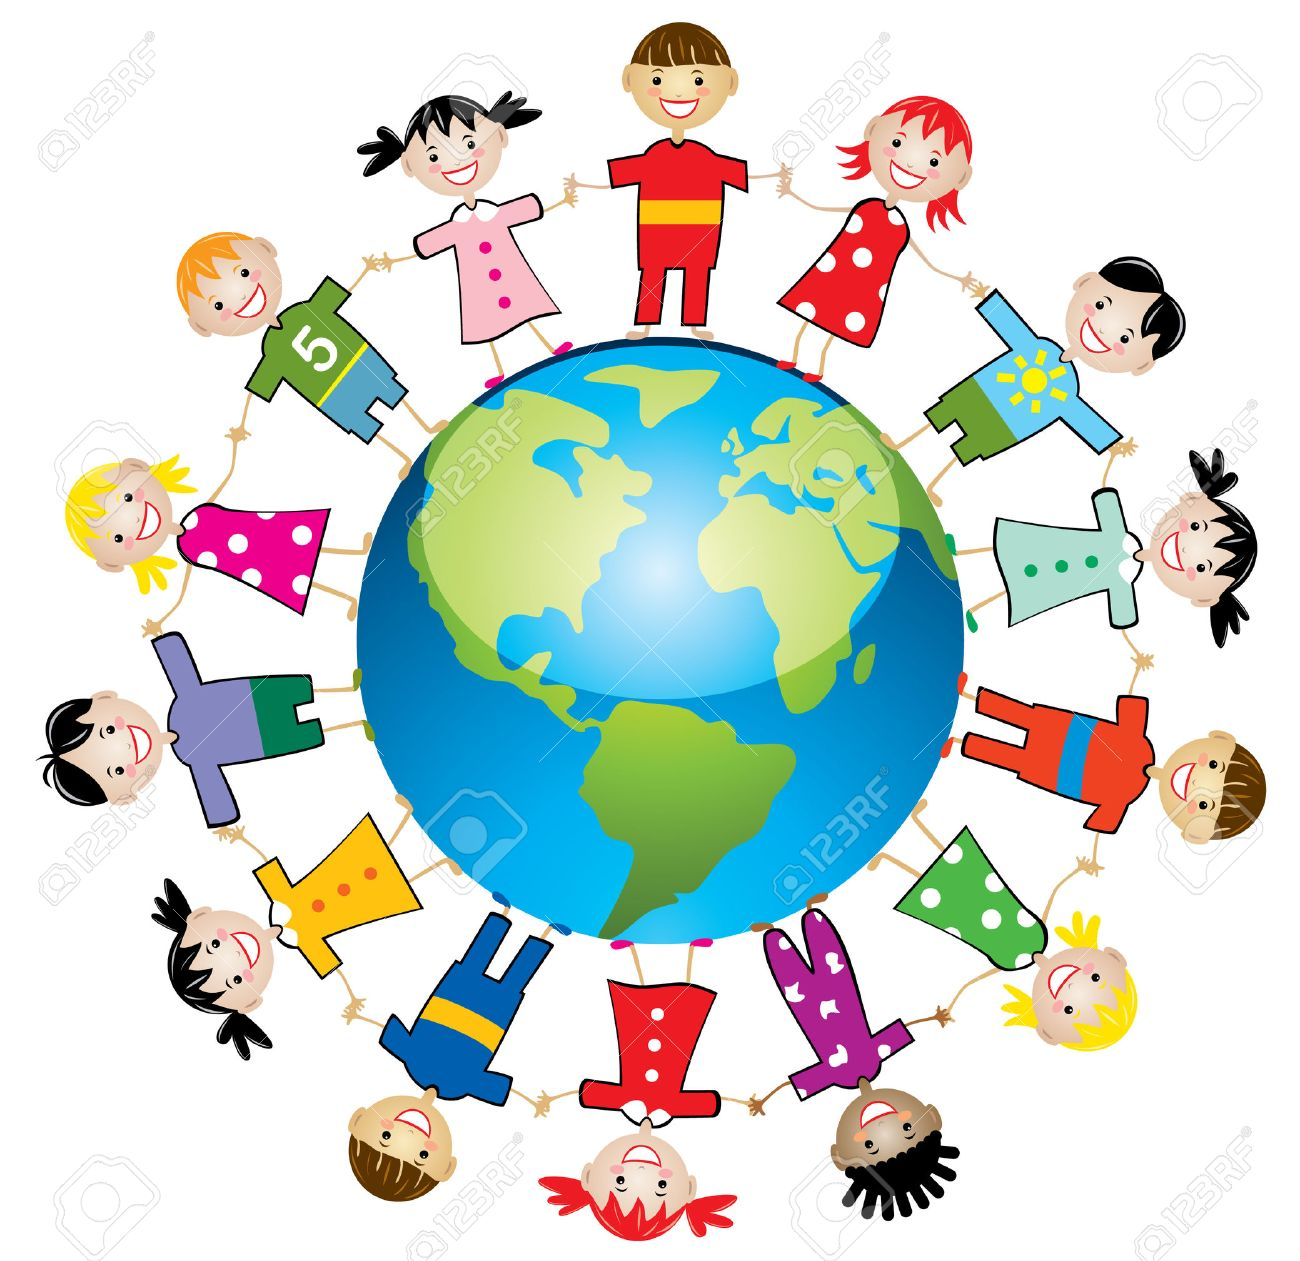 Children around the world clipart 9 » Clipart Station.